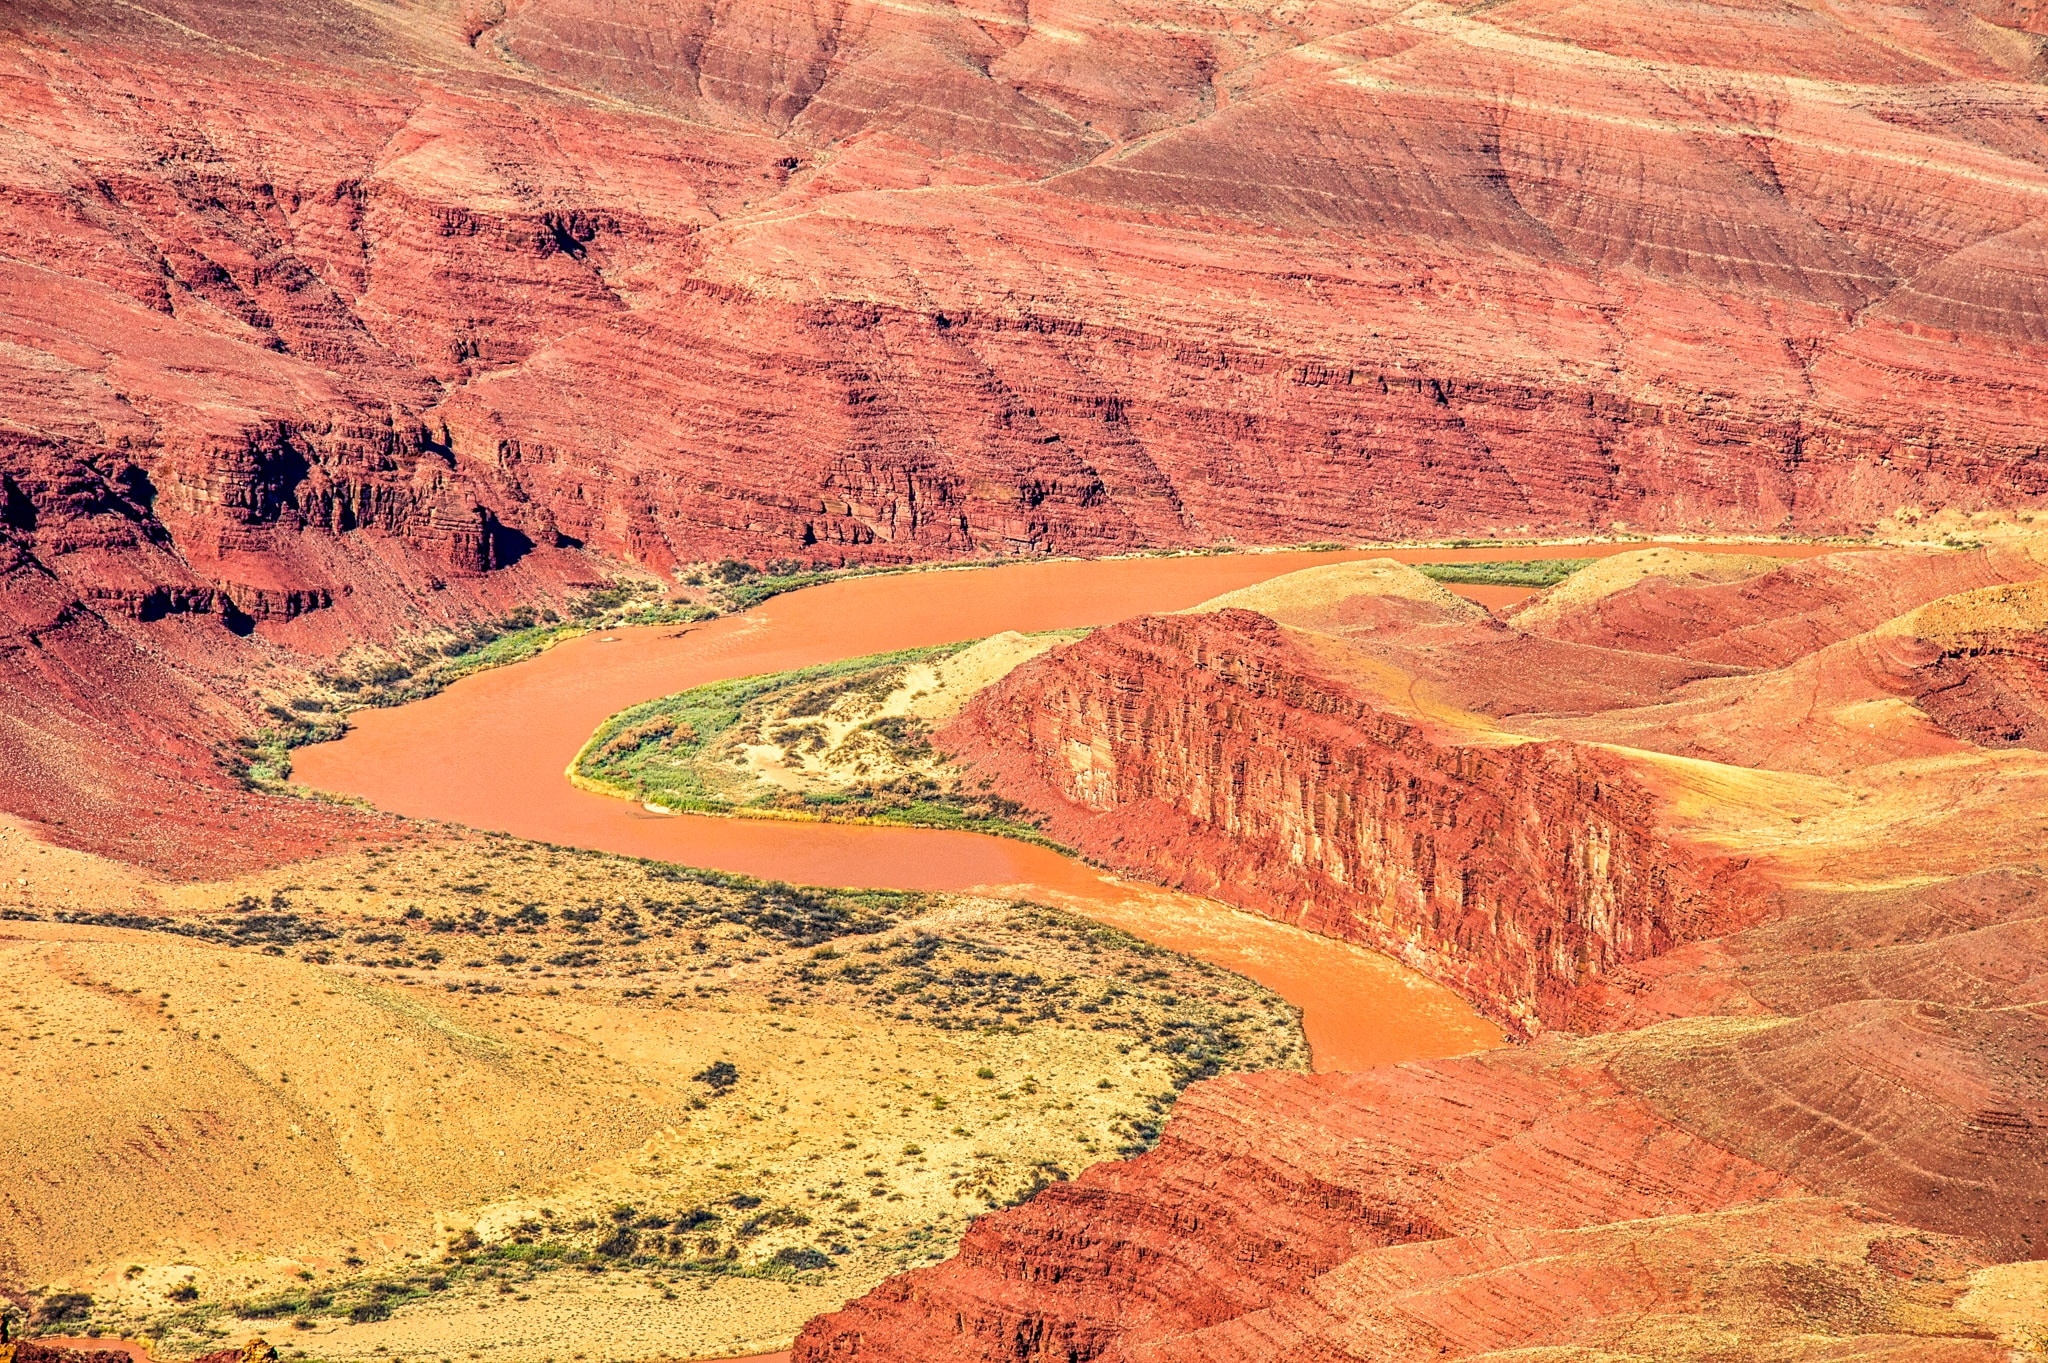 The Colorado River as seen from a Grand Canyon Overlook.